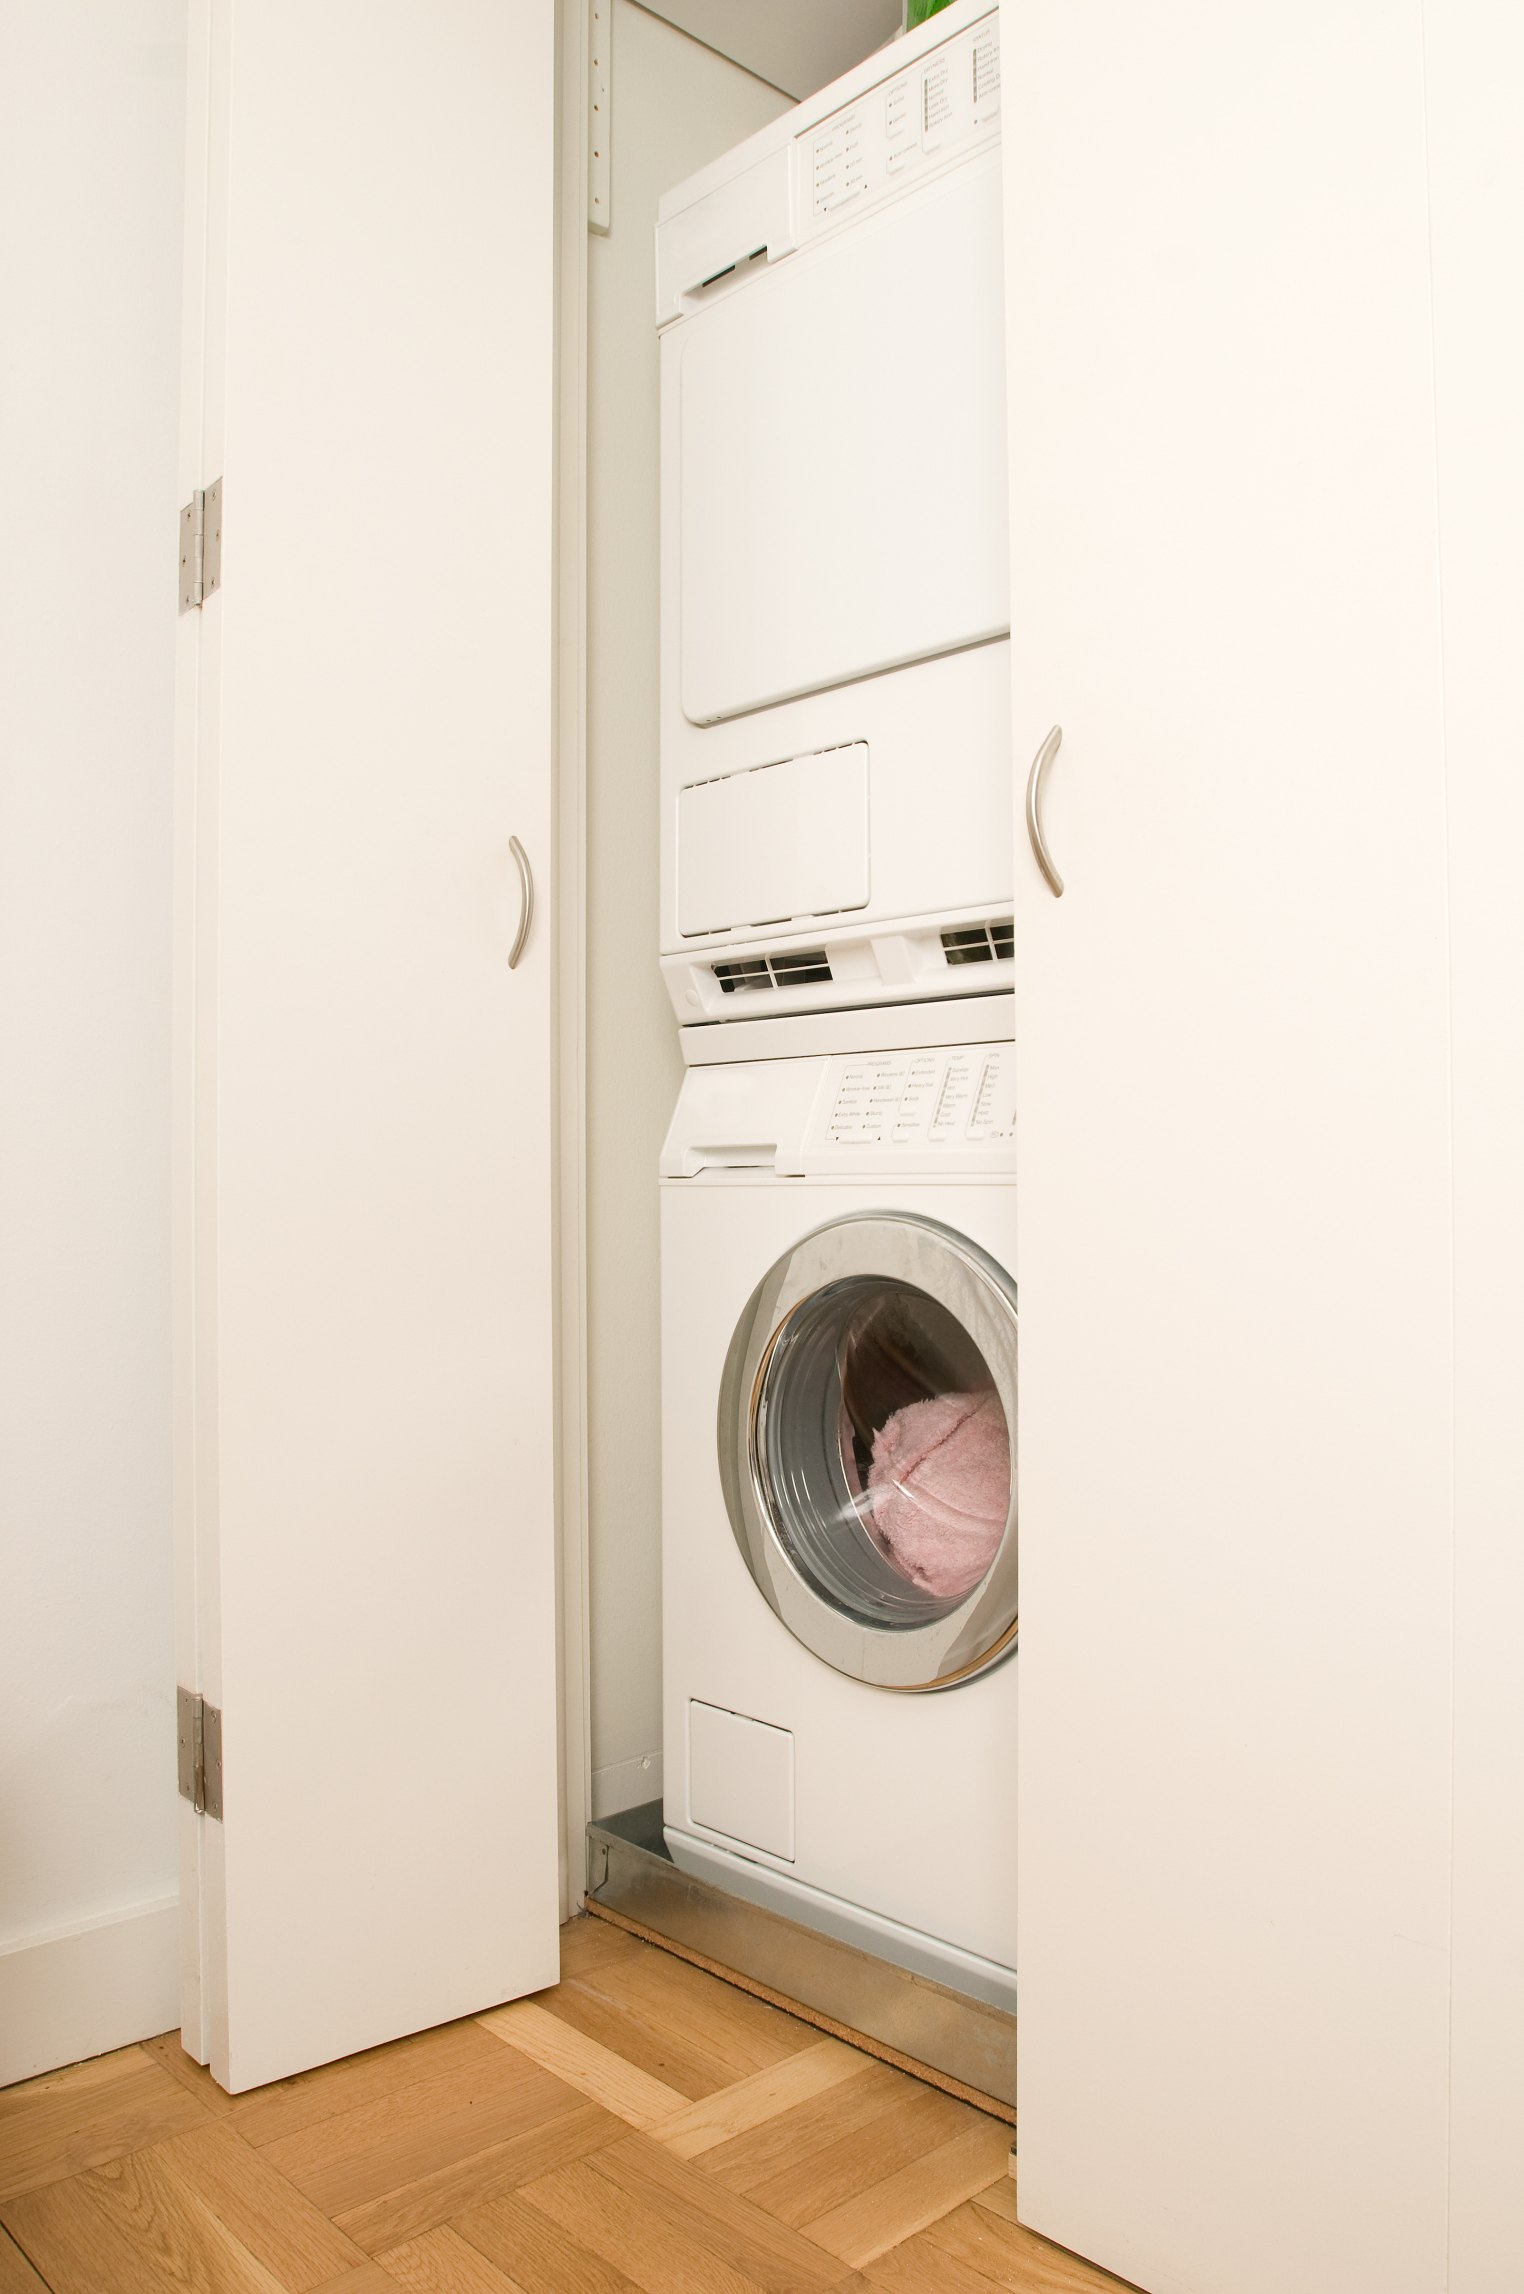 How To Build A Closet Around A Washing Machine Amp Dryer Ehow